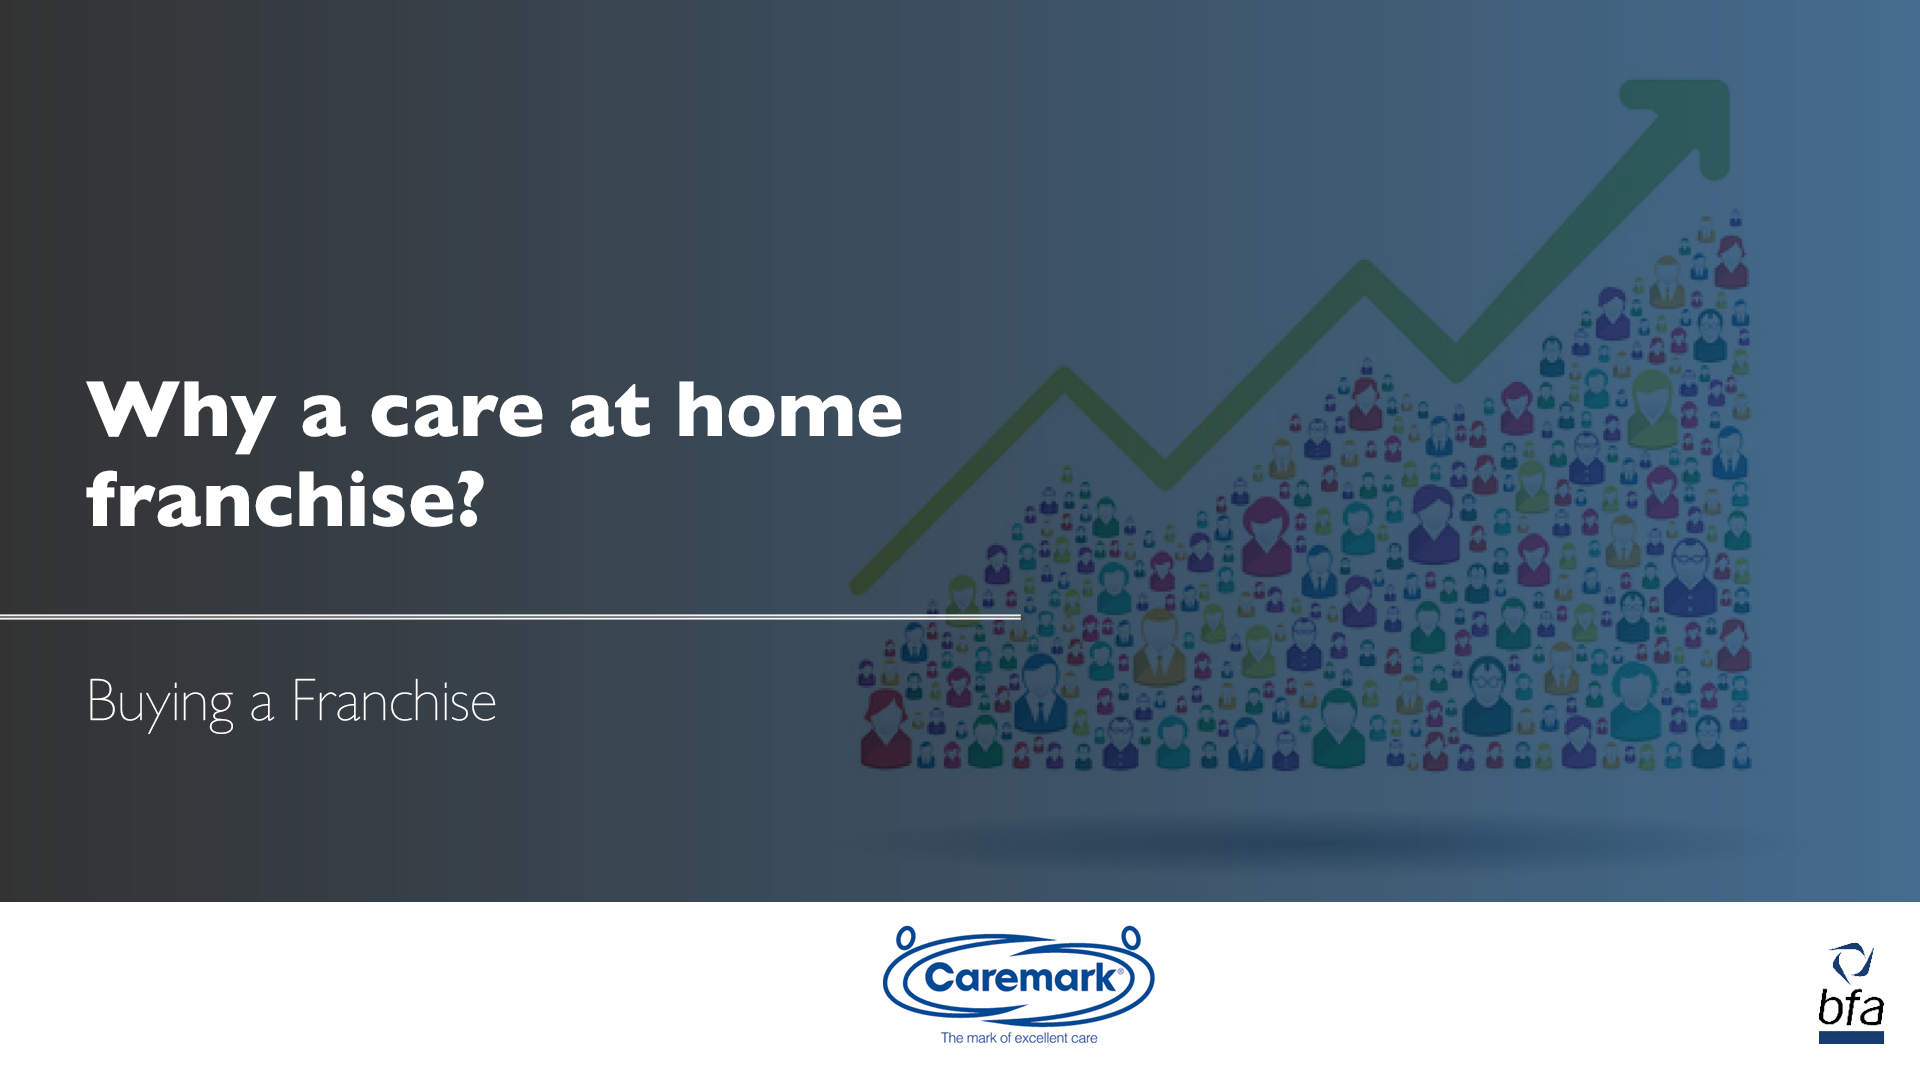 Why a care at home franchise?